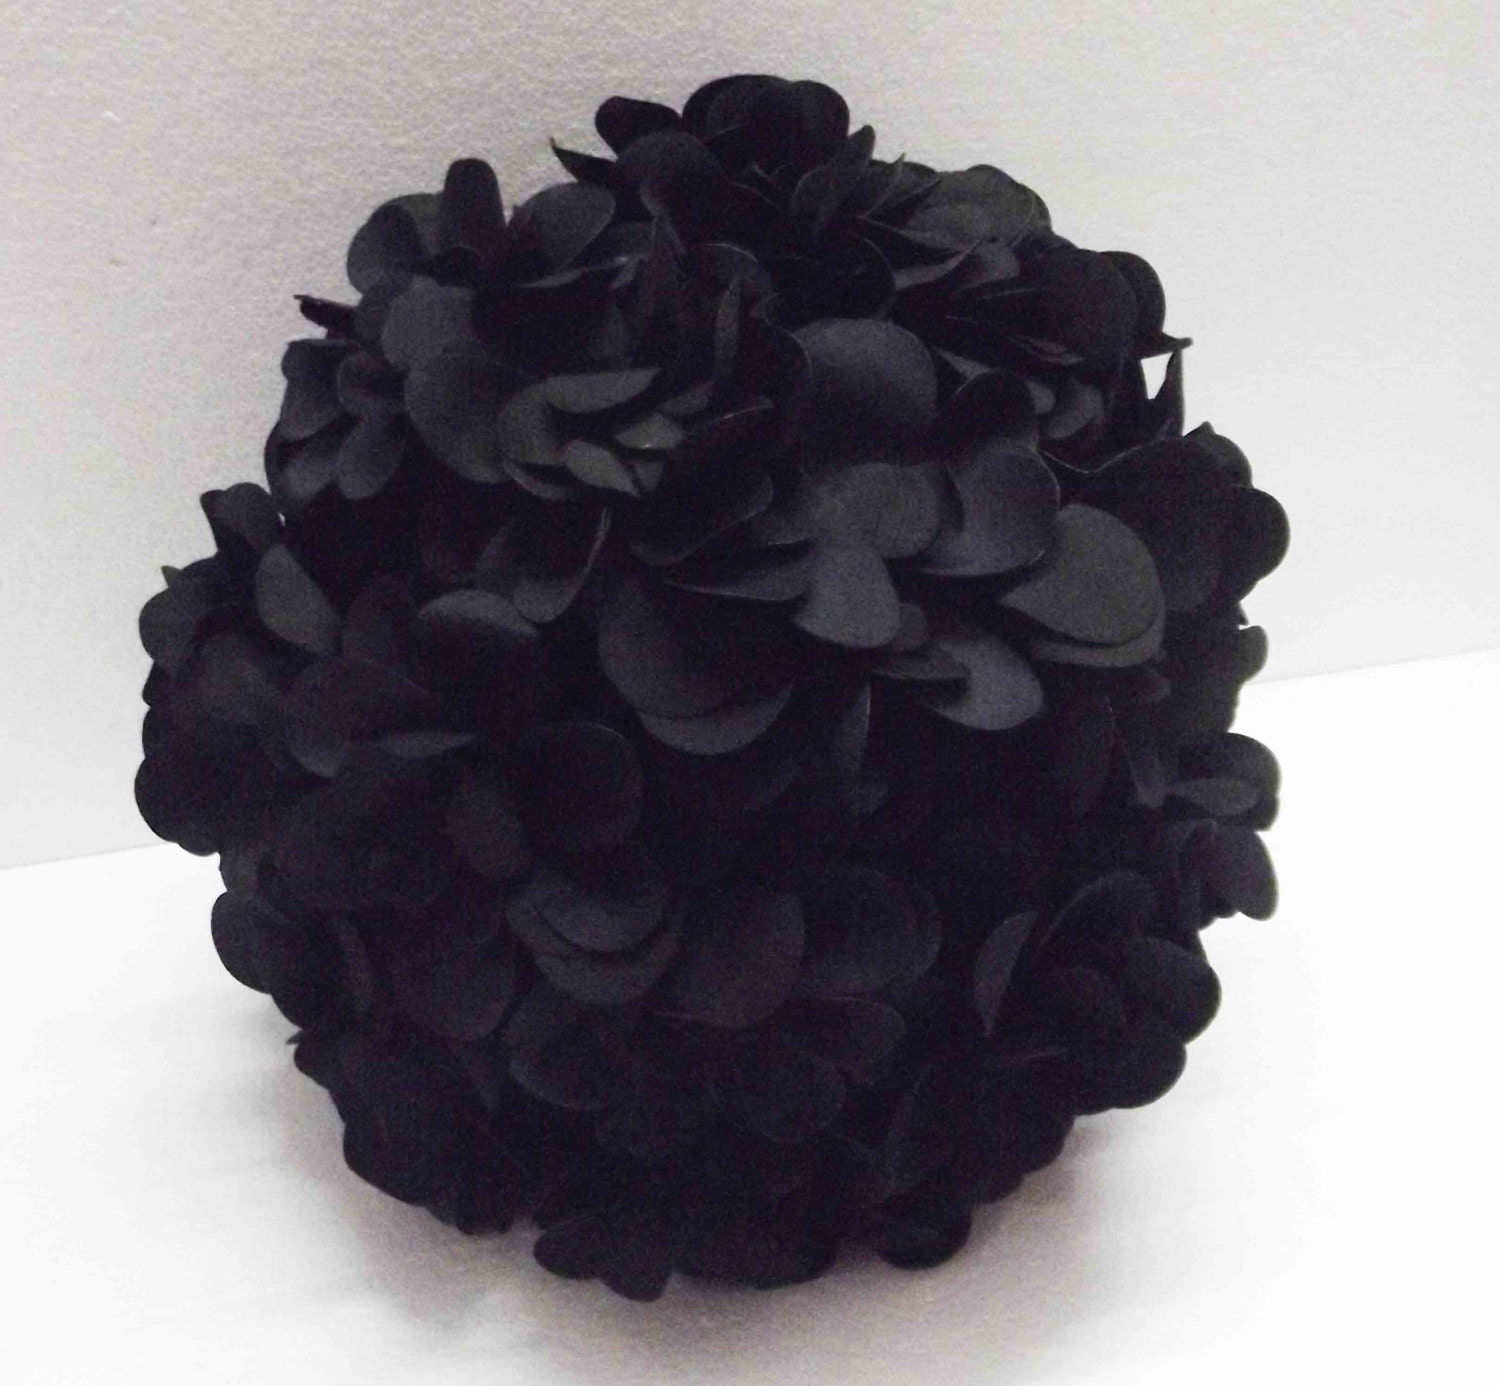 Round Decorative Pillows Black Flower Pillow Round Pillow Pouf Decorative Pillow